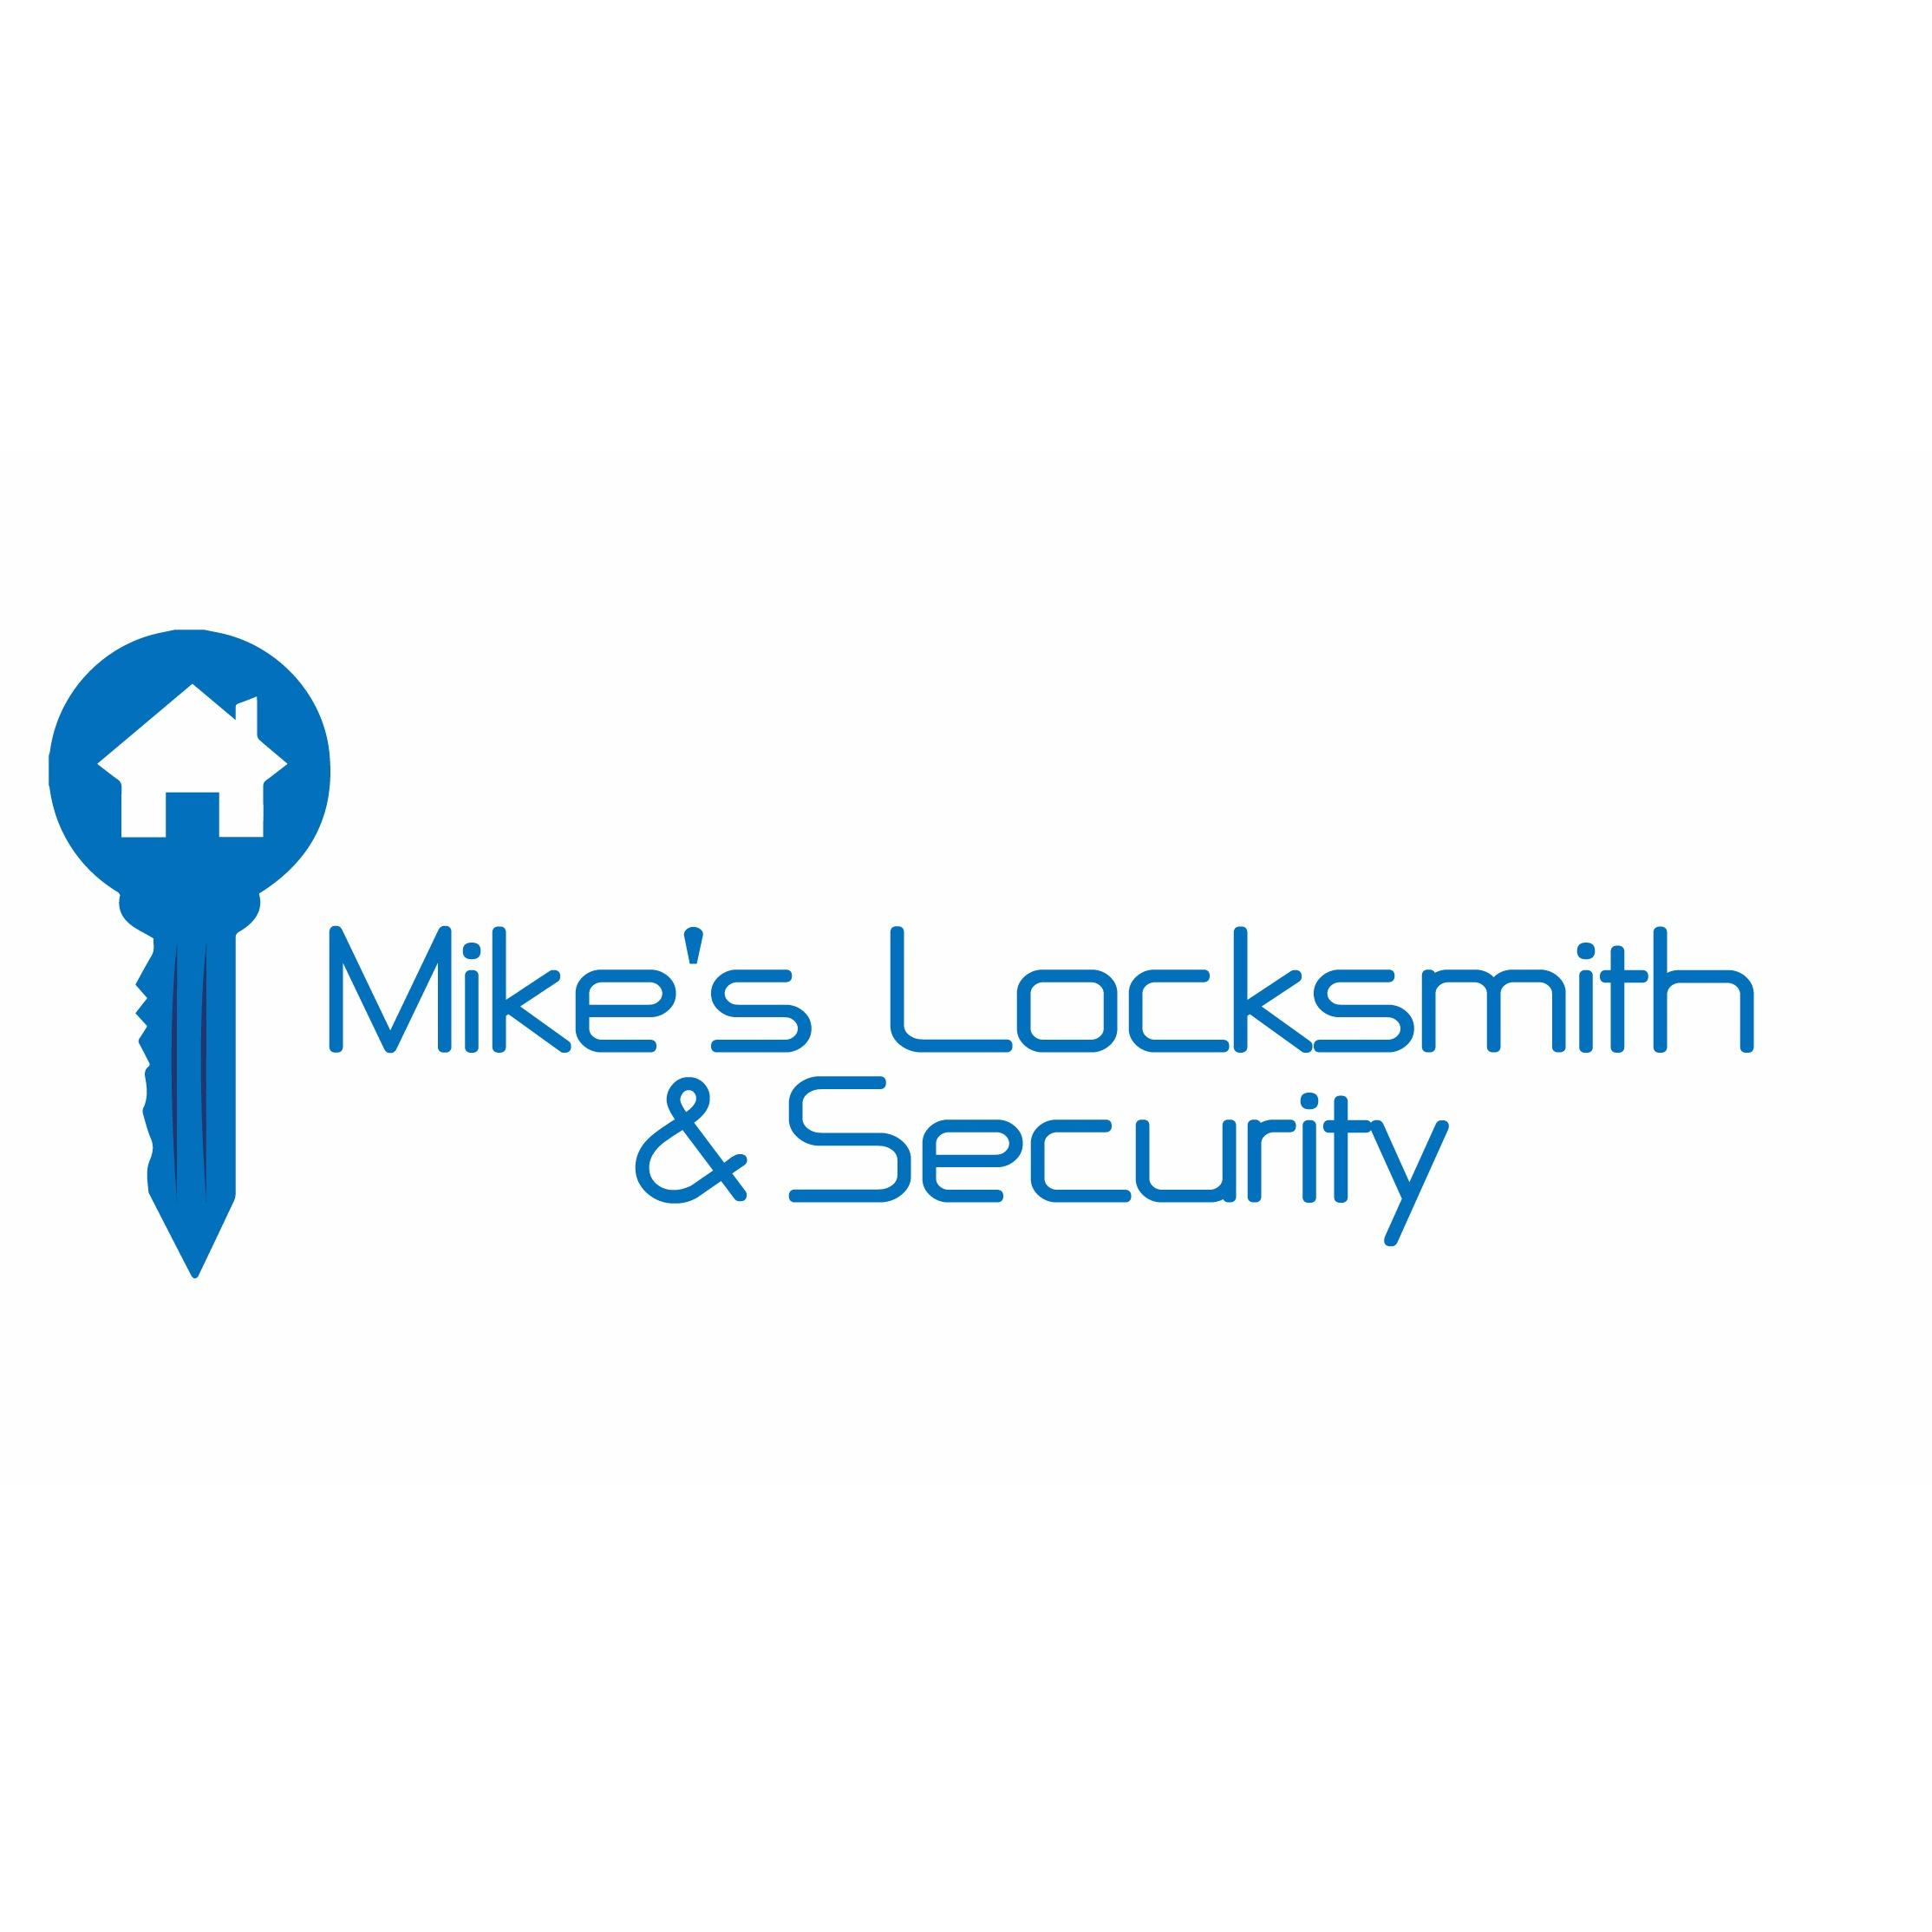 Mike's Locksmith, LLC